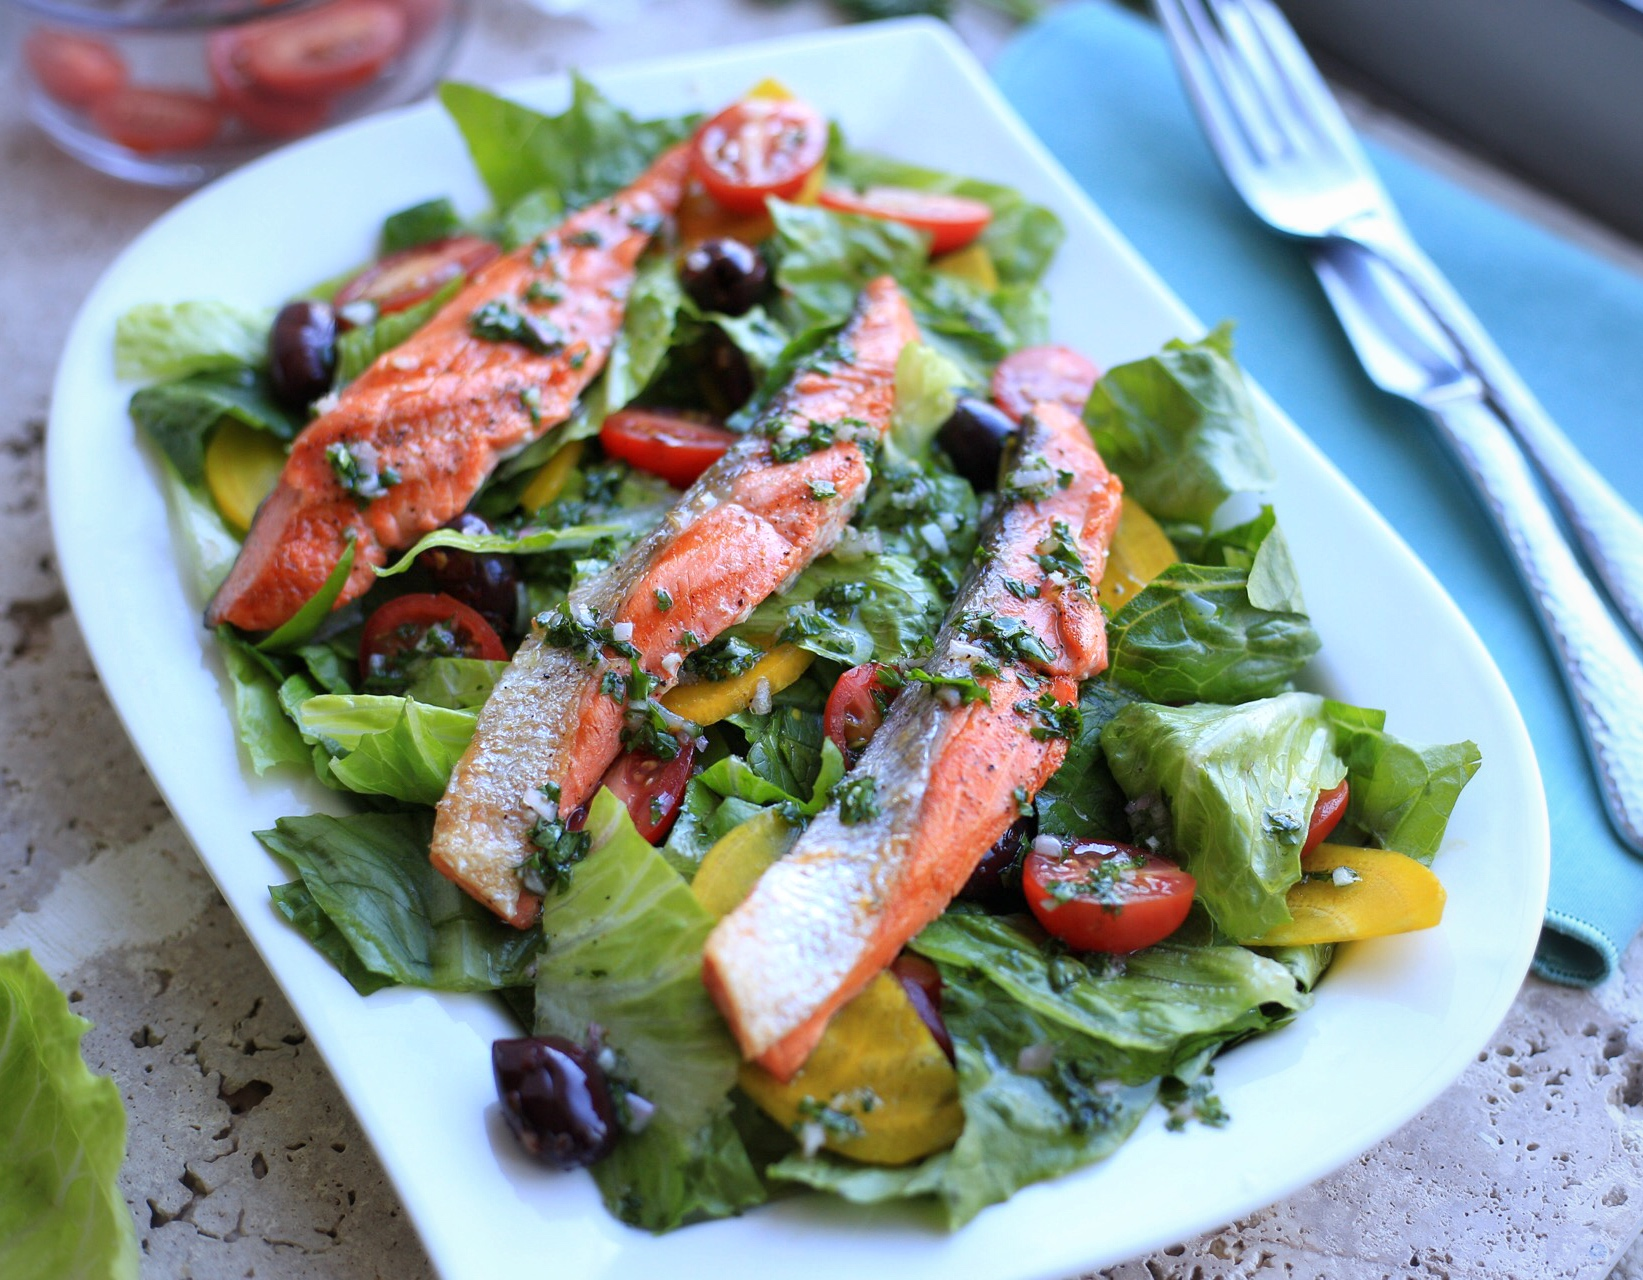 Grilled salmon salad with romaine and yellow beets